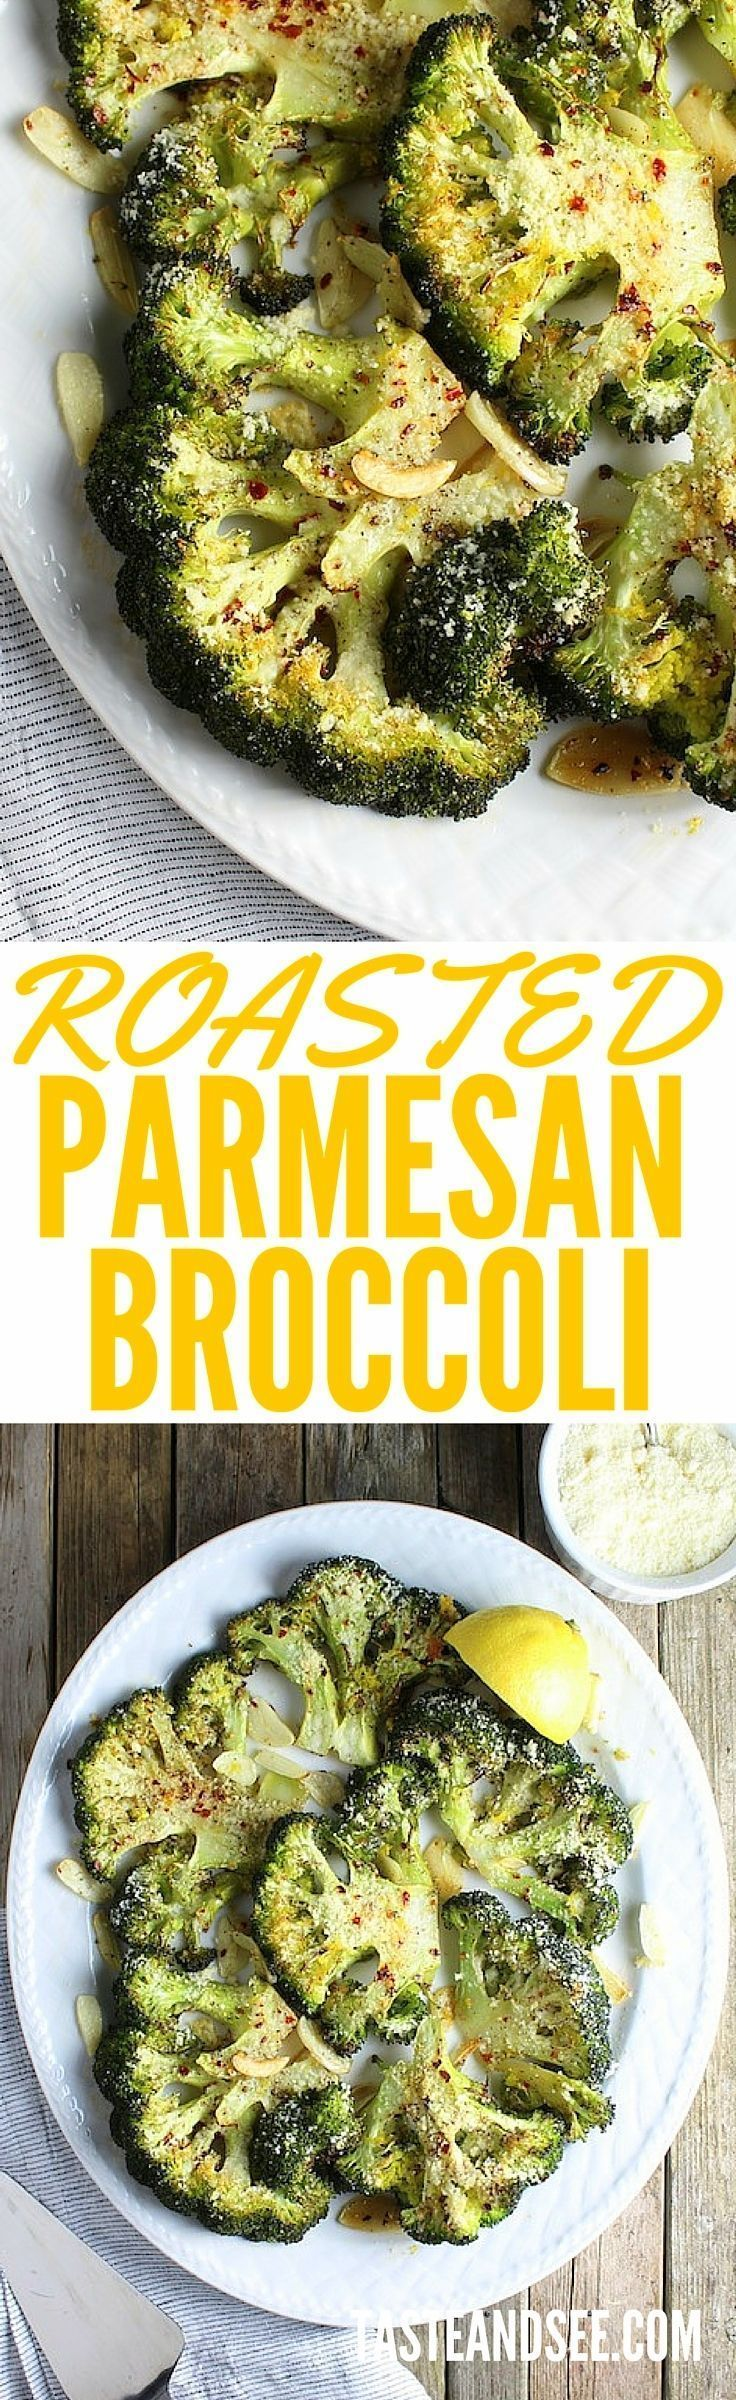 Roasted Parmesan Broccoli - with olive oil, Parmesan cheese, sliced garlic, lemon zest.  Super simple & healthy, this is a yummy, easy veggie dish.  http://tasteandsee.com